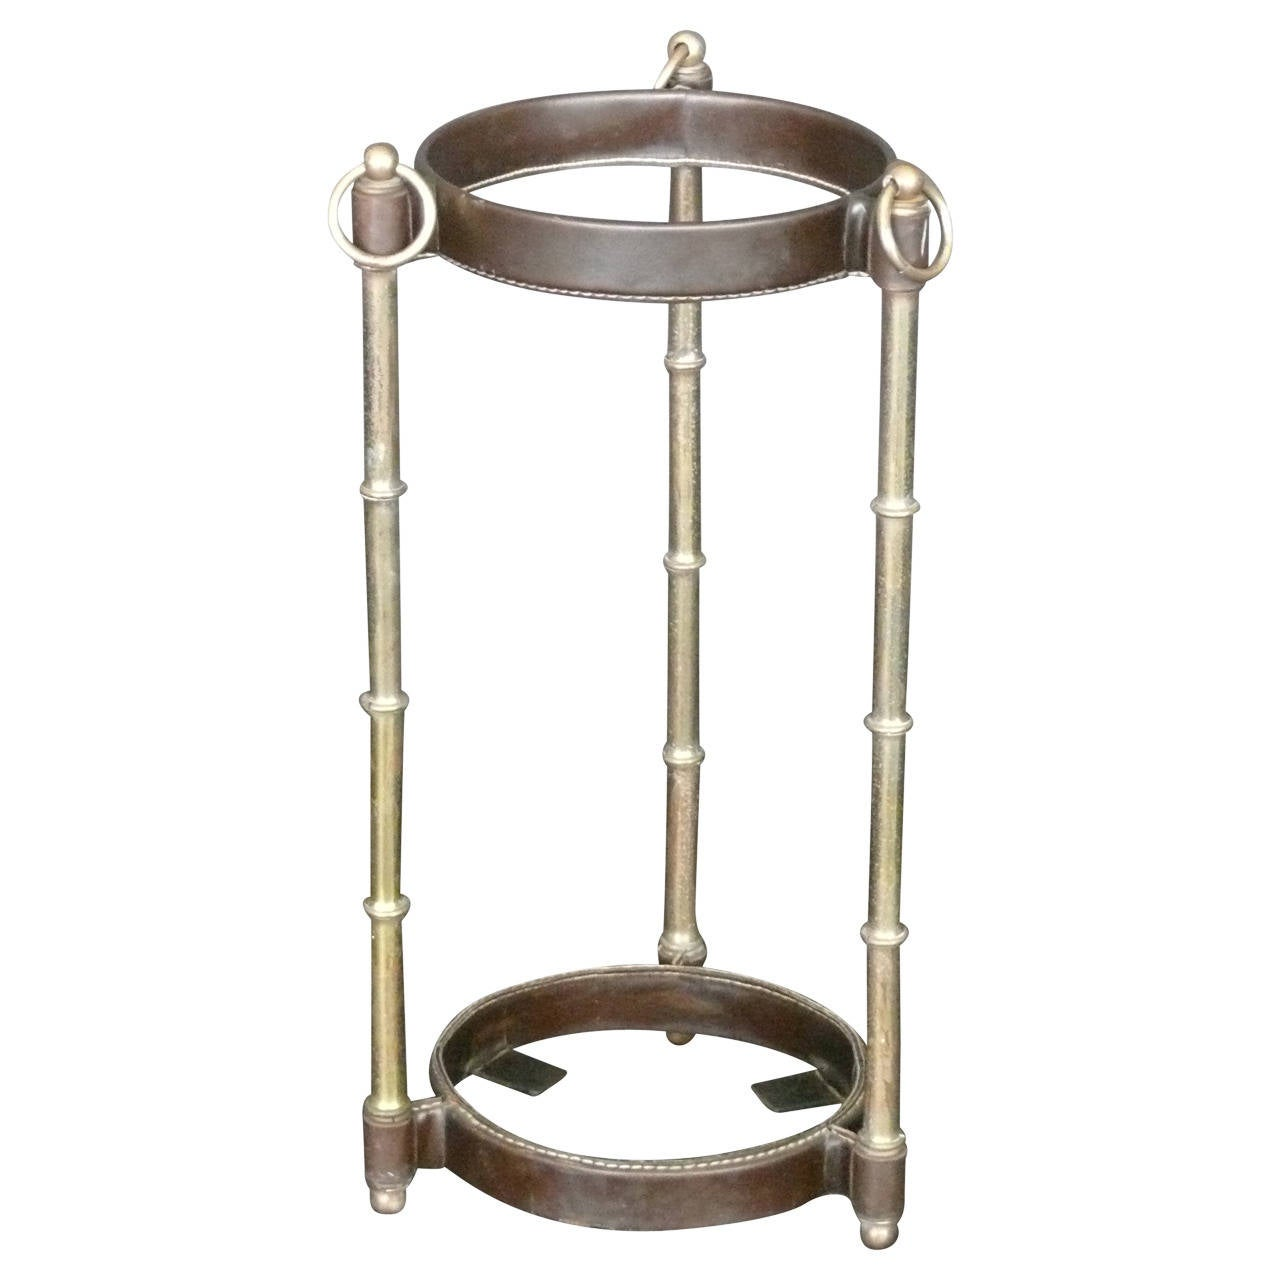 Jacques adnet umbrella stand at 1stdibs for L furniture more kelowna